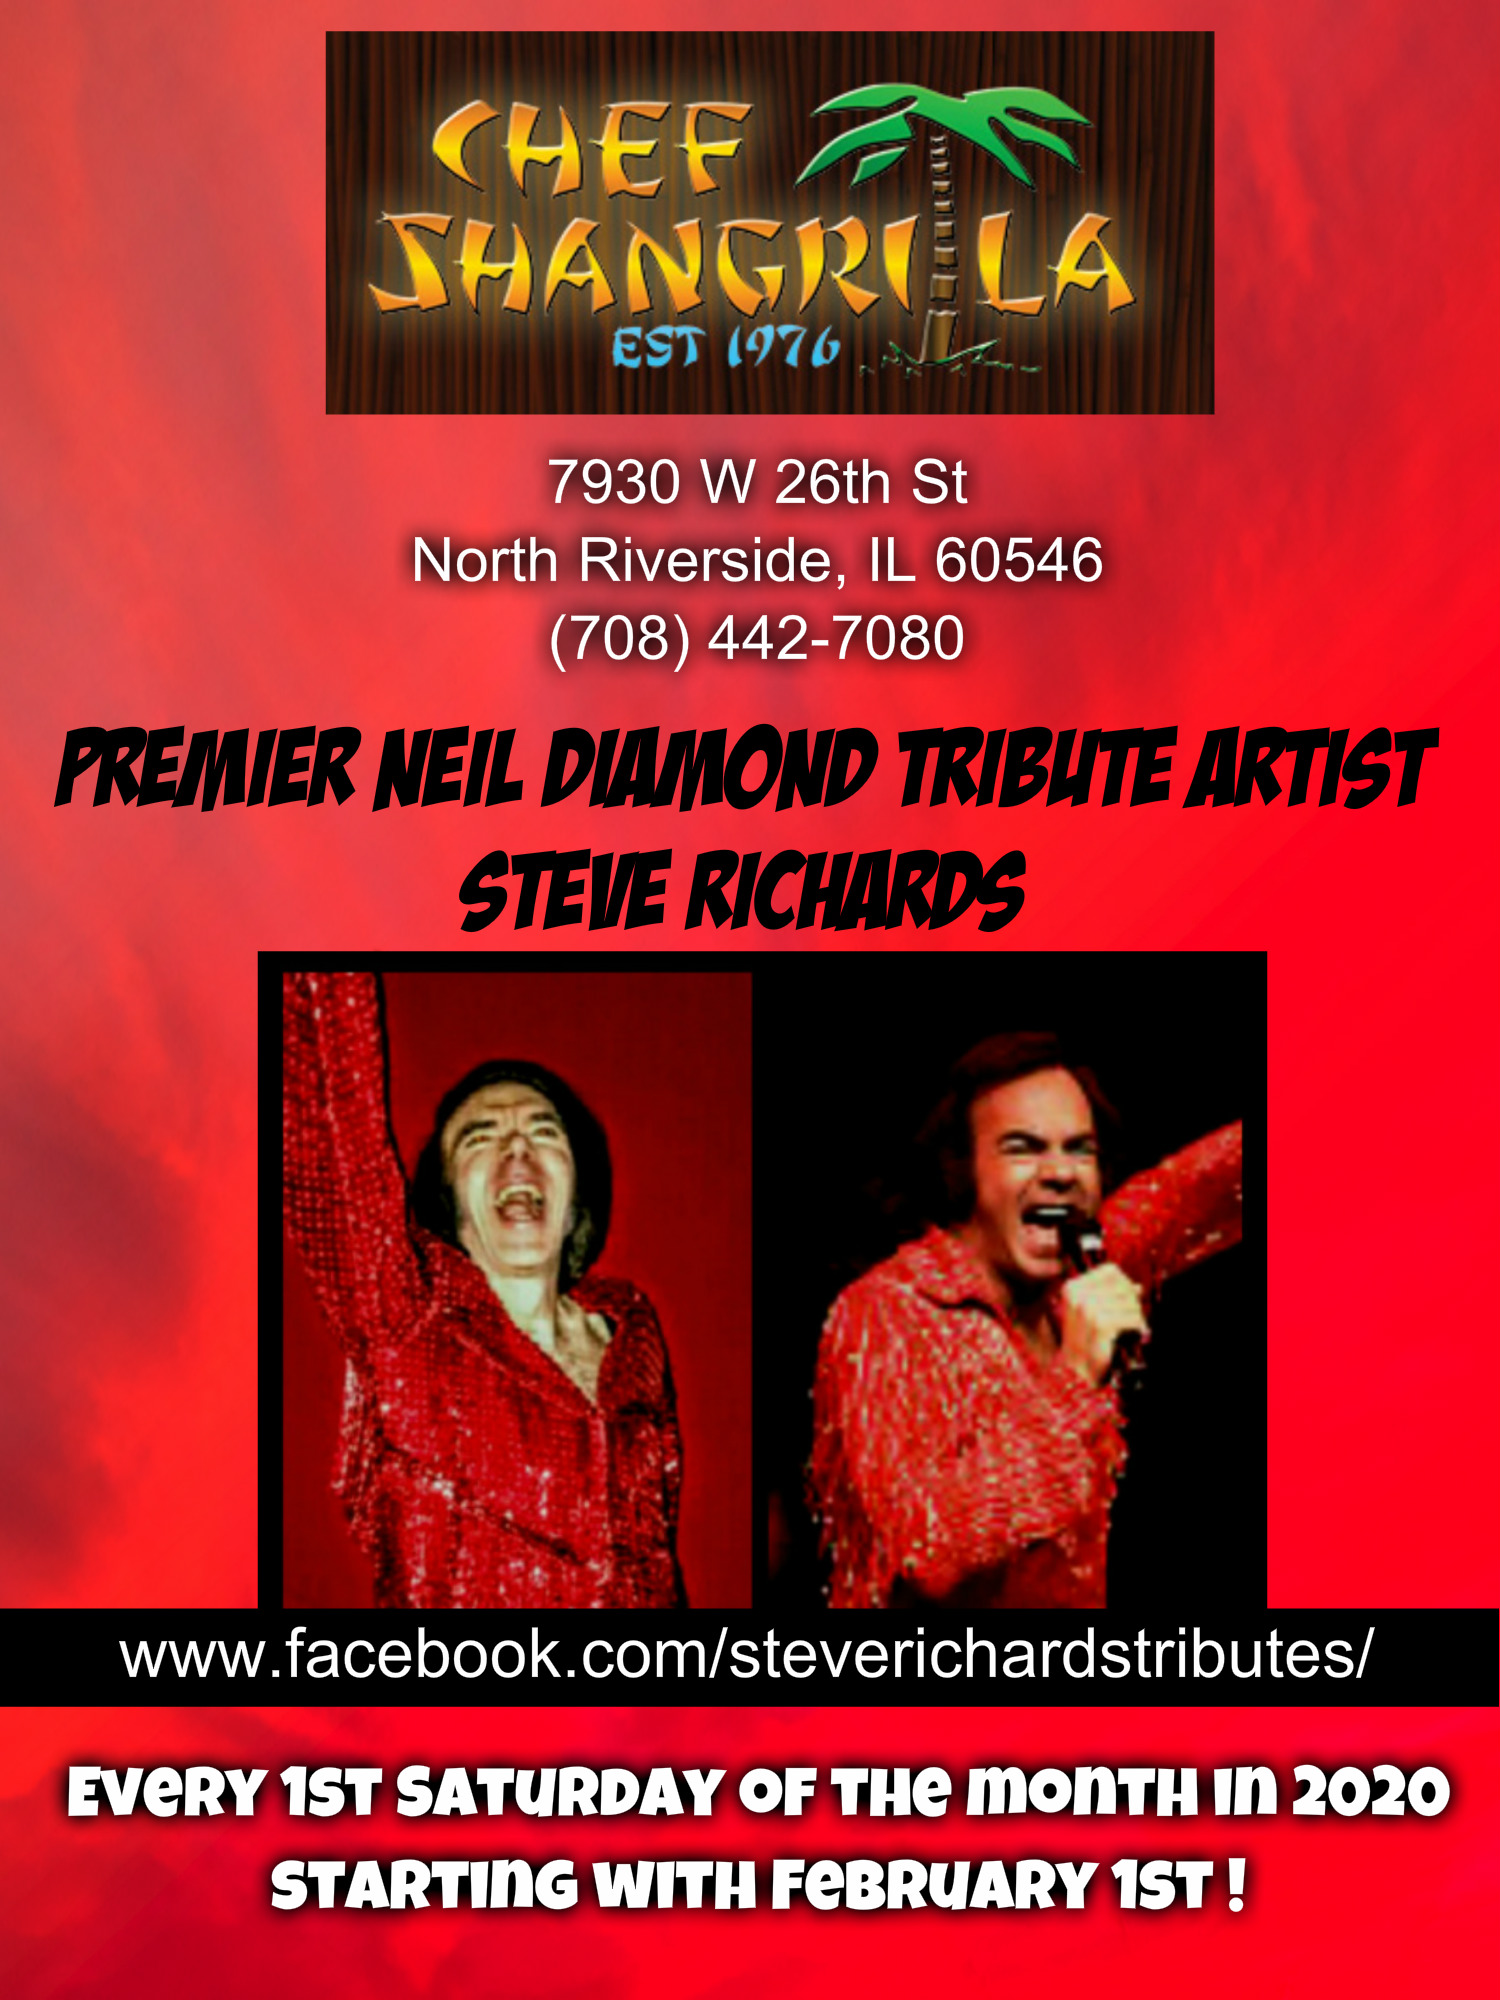 Premier Neil Diamond Tribute Artist Stev